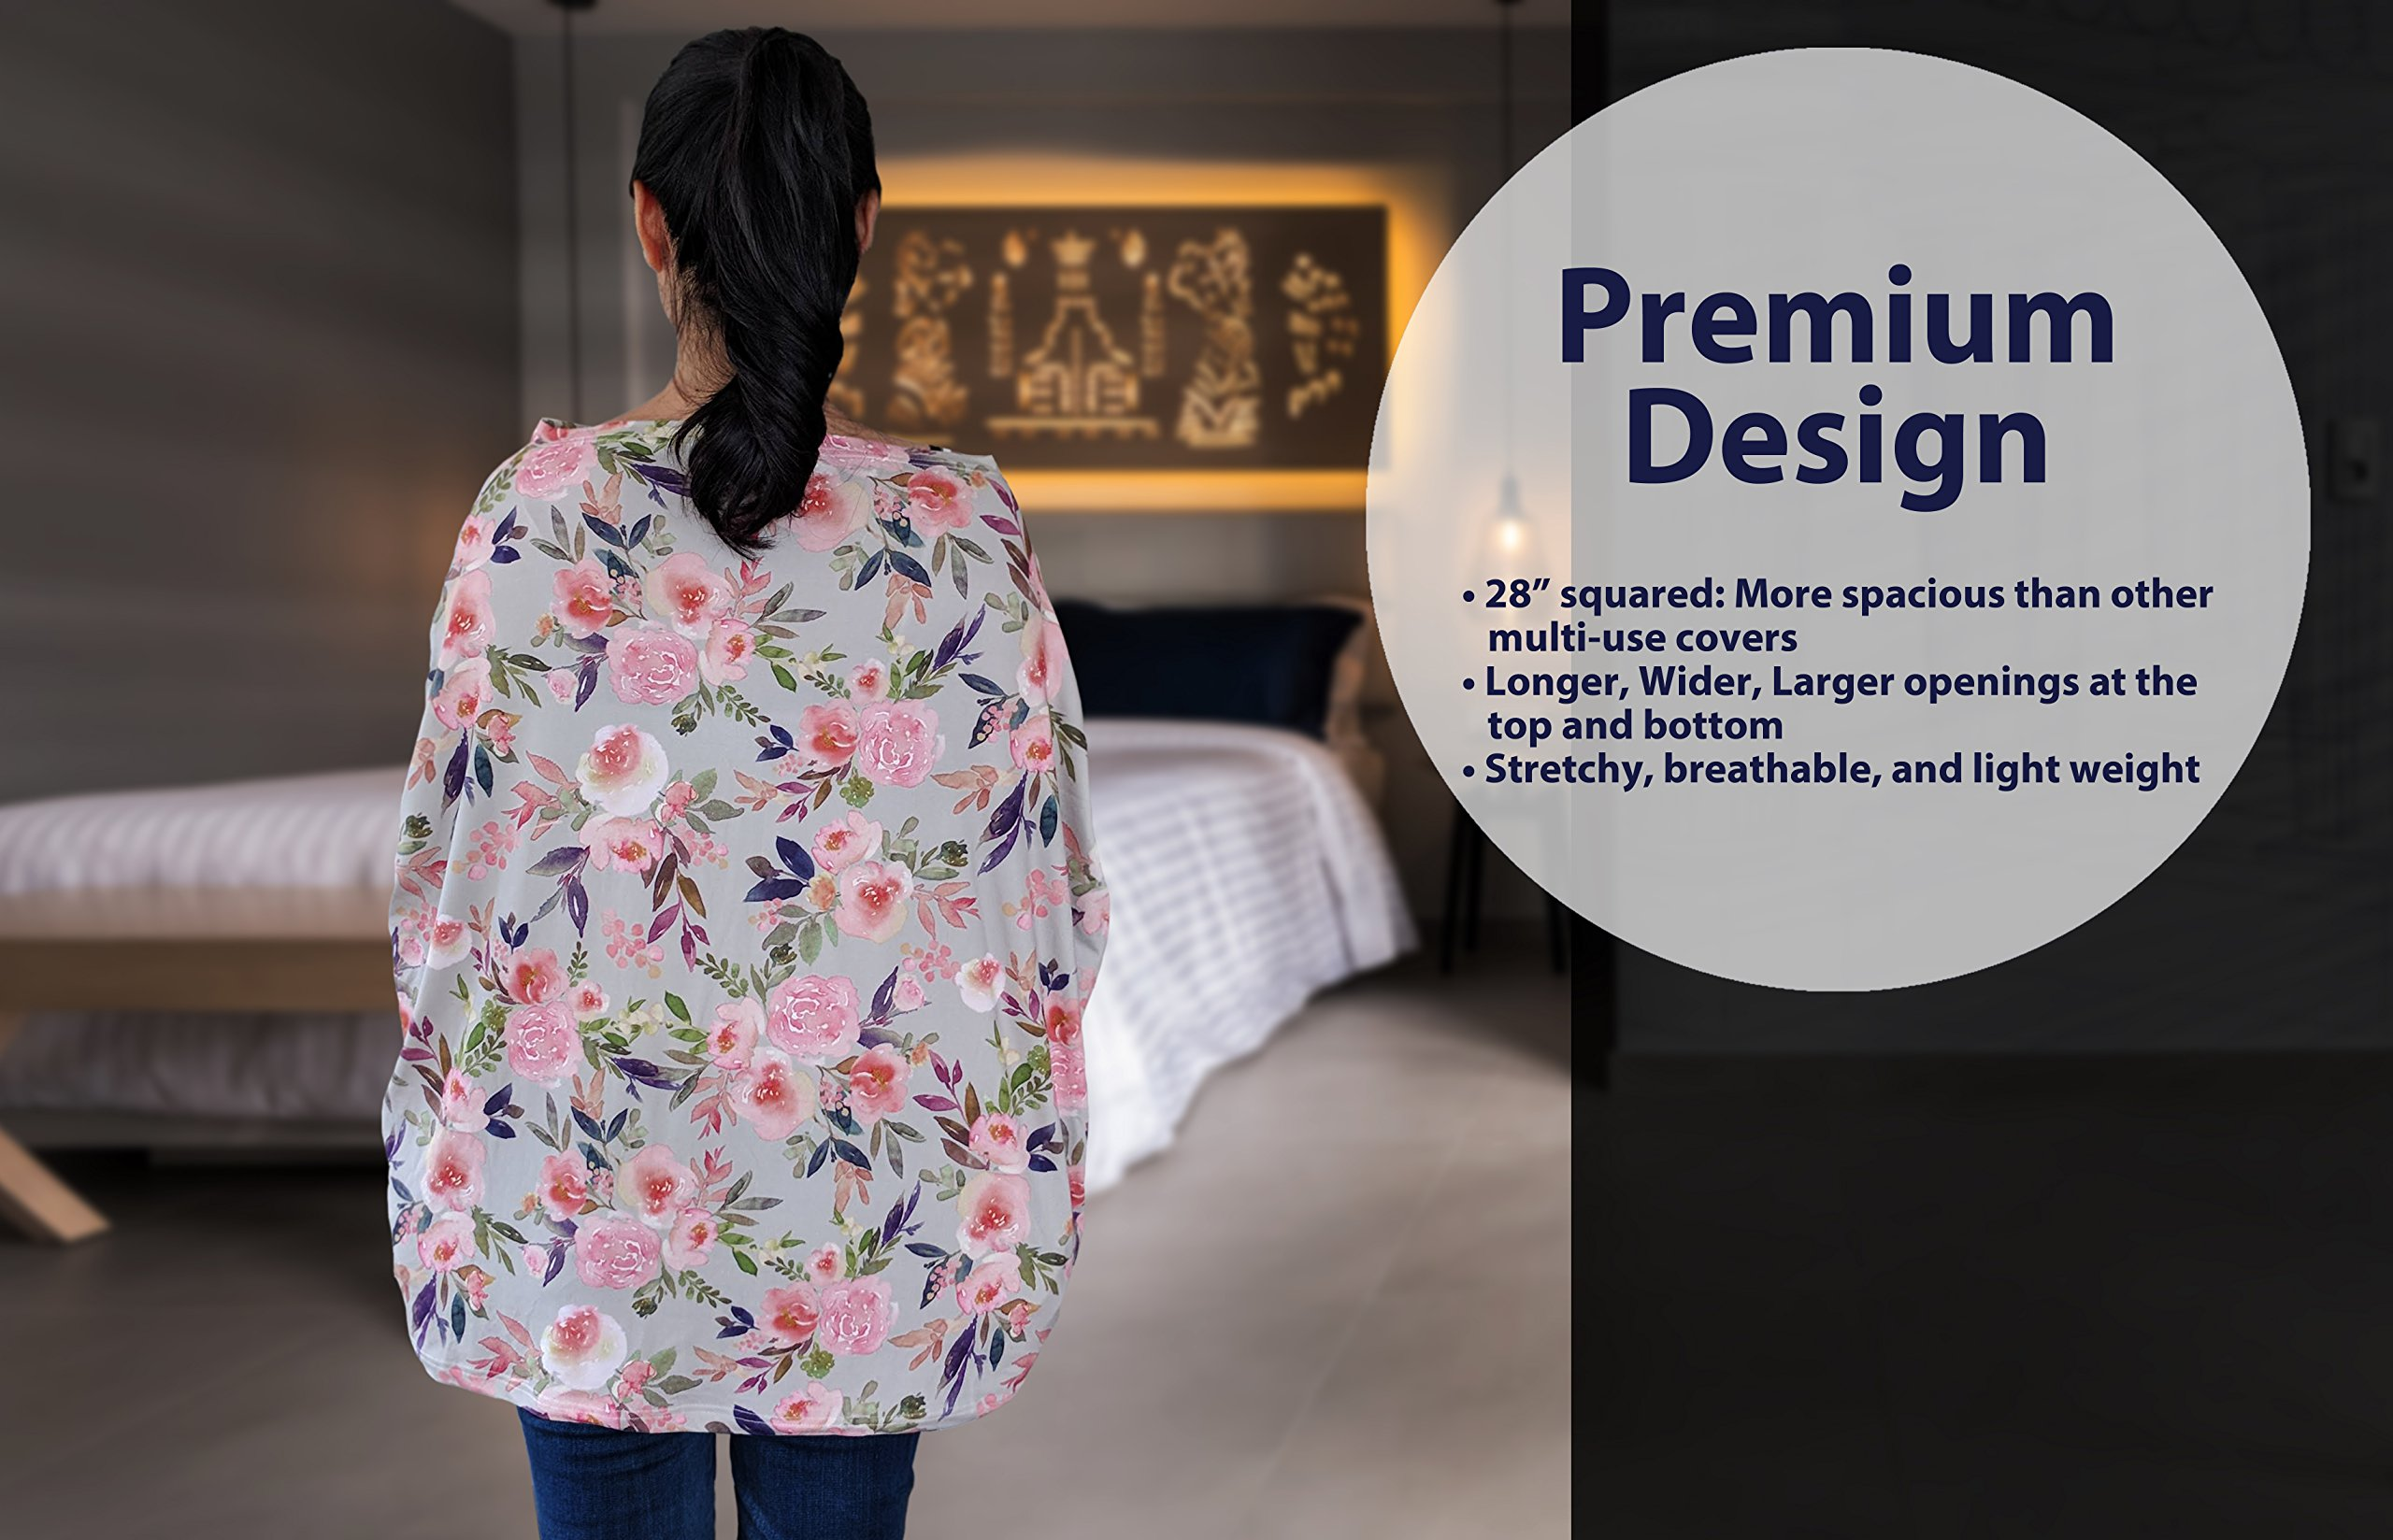 Premium Soft, Stretchy, and Spacious 4 in 1 Multi-Use Cover for Nursing, Baby Car Seat, Stroller, Scarf, and Shopping Cart - Best Gifts by Pobibaby (Grace) by Pobibaby (Image #9)